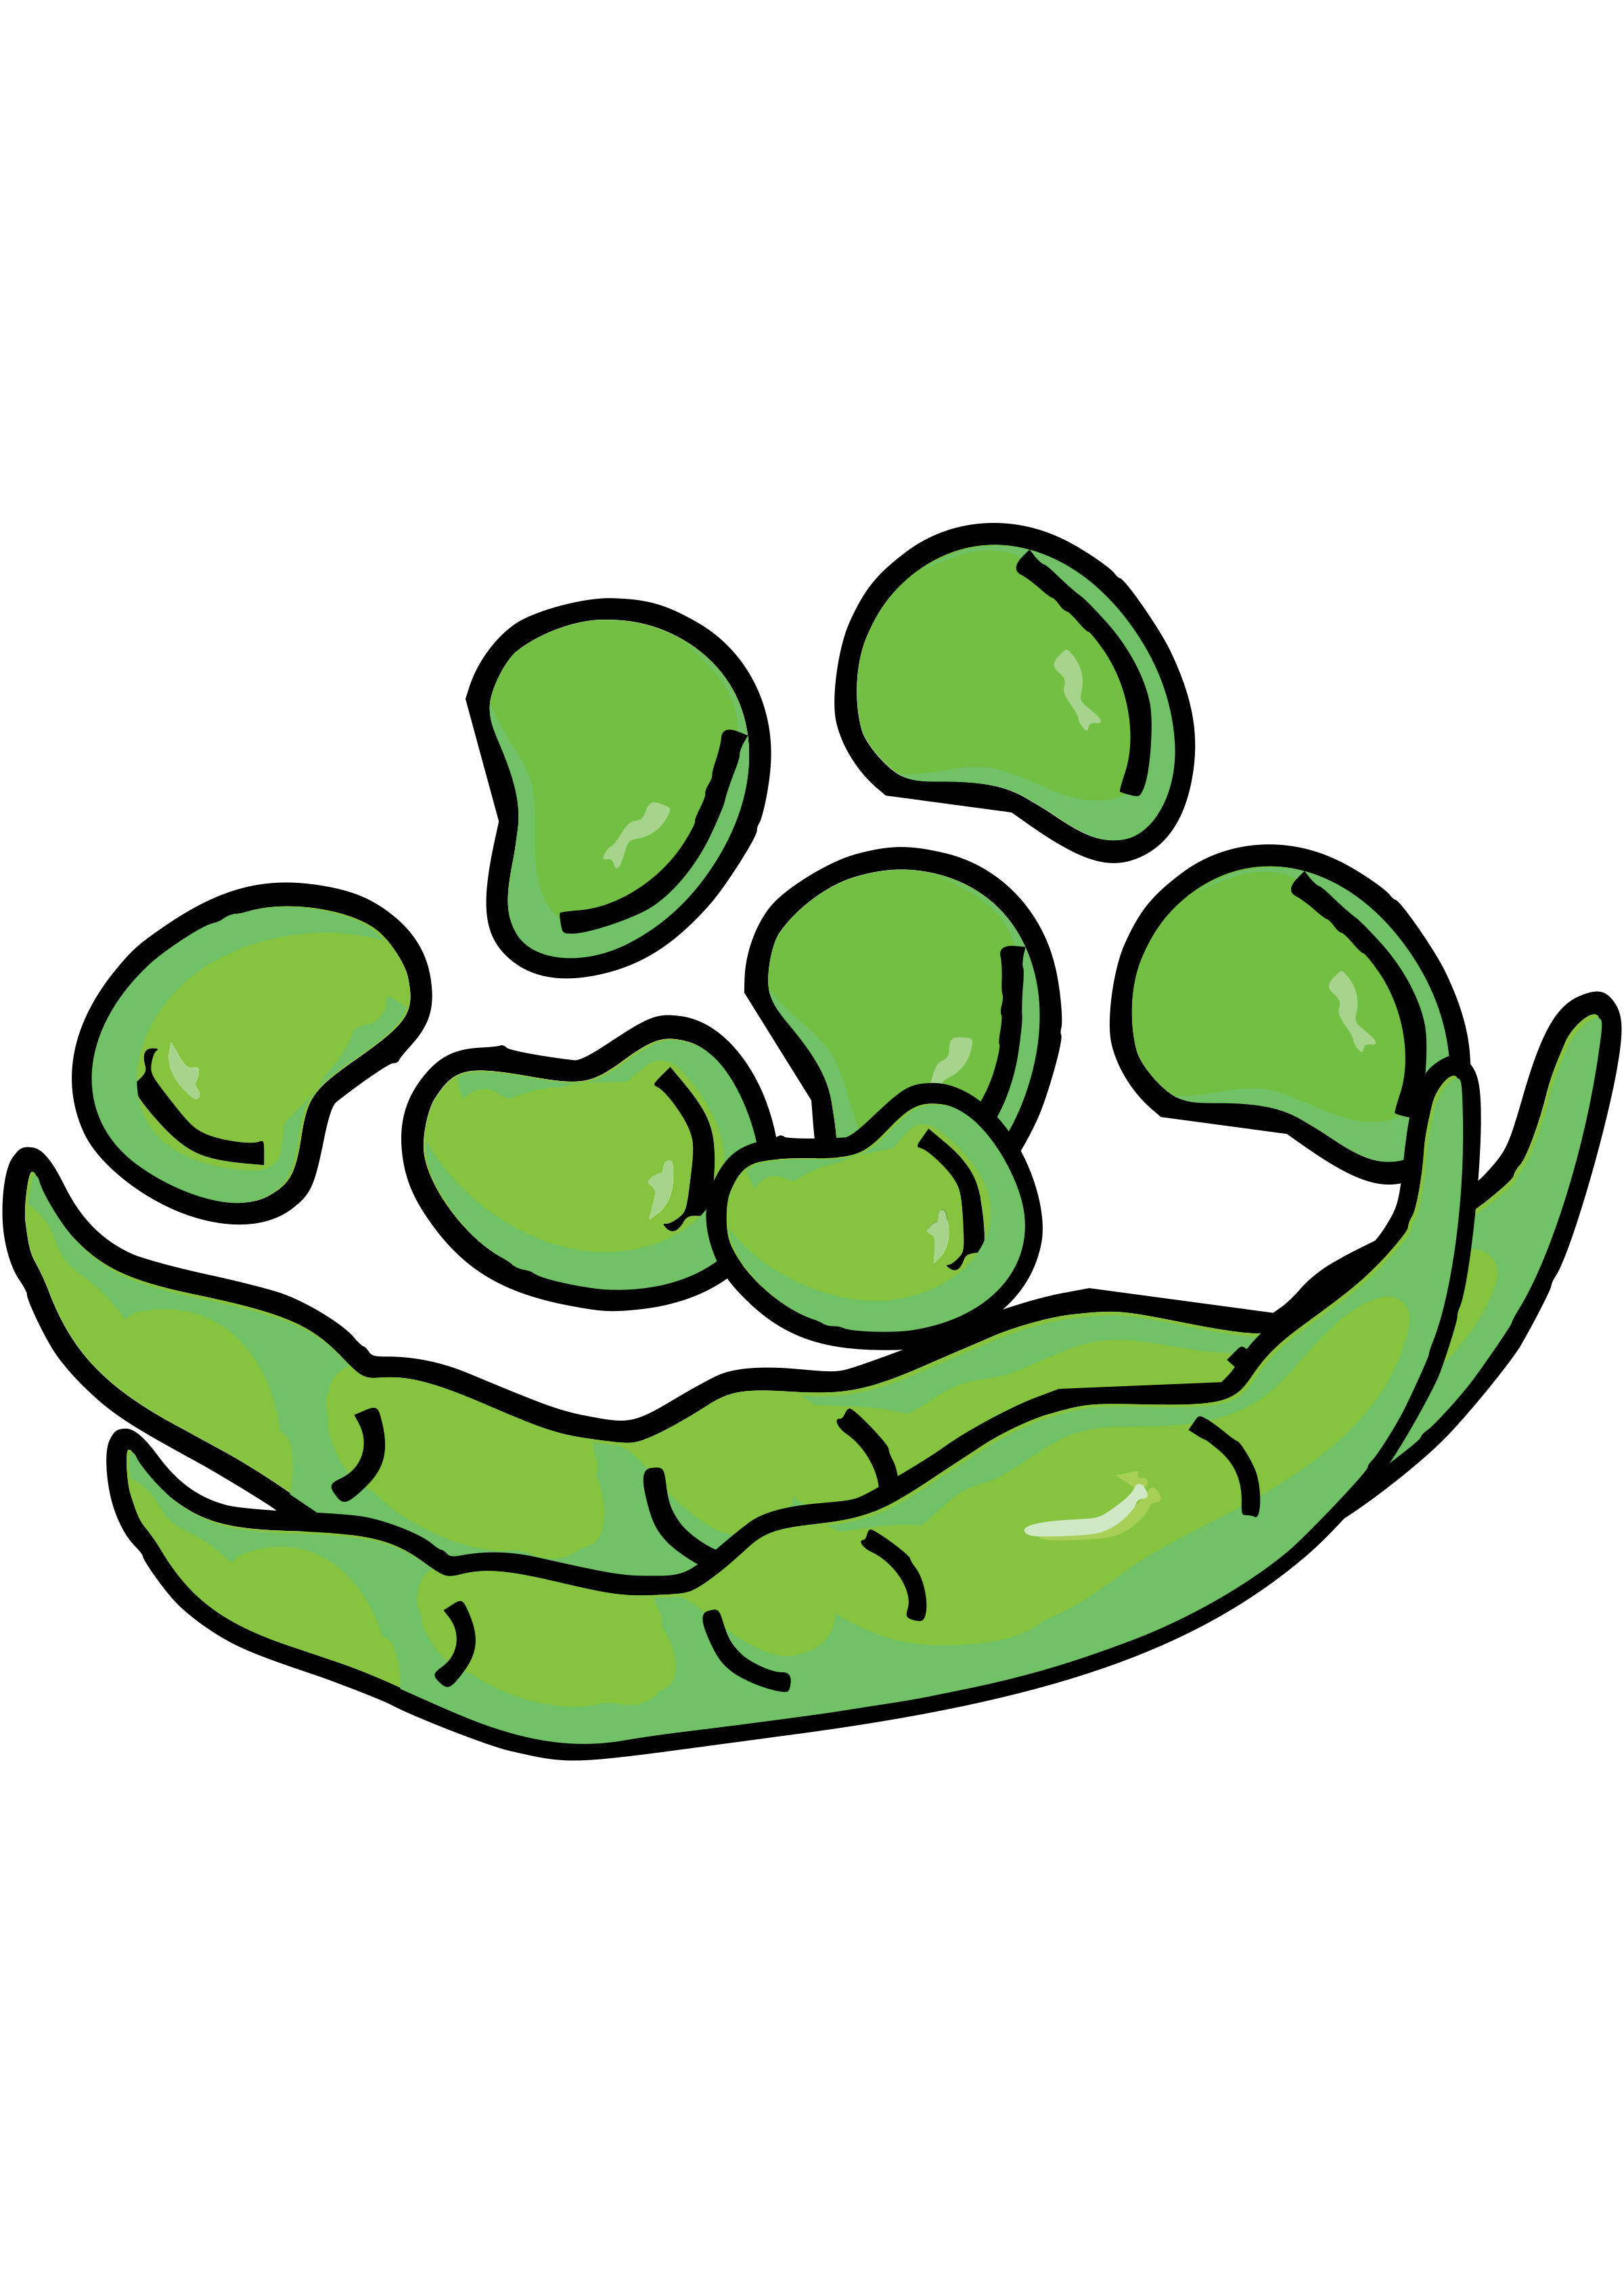 Bean clipart broad bean, Bean broad bean Transparent FREE.